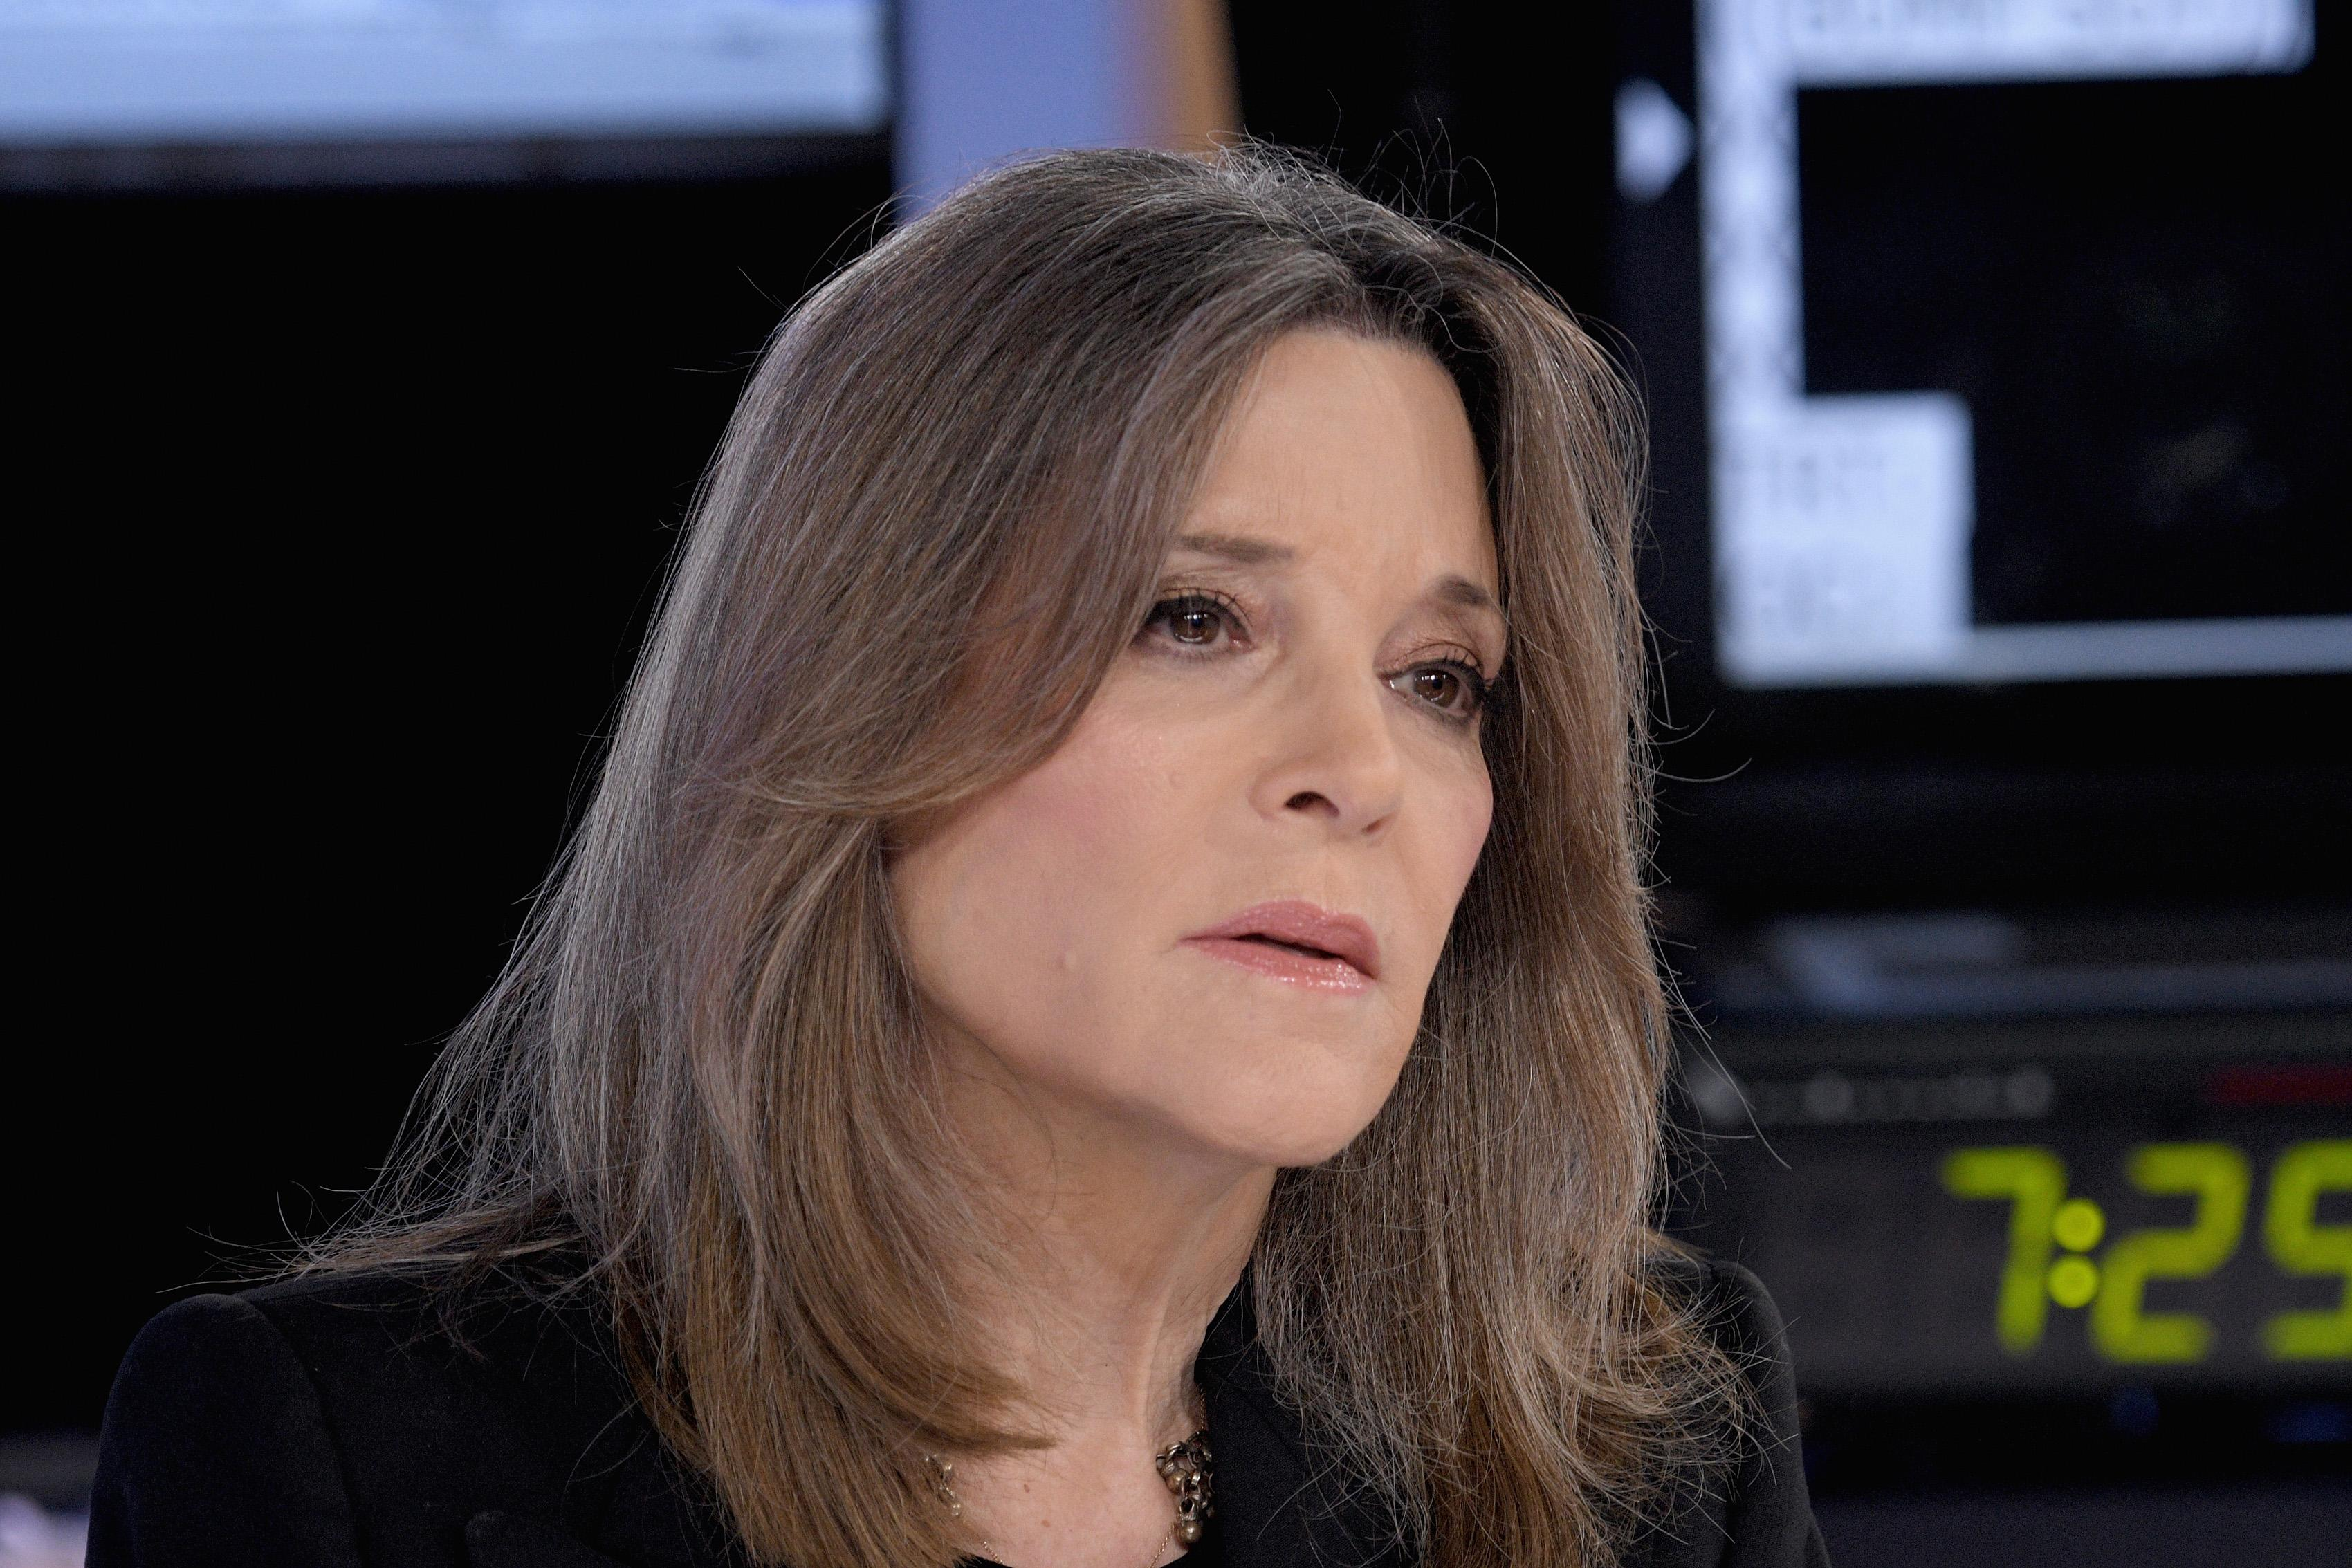 Marianne Williamson supports Yang's UBI but says 'it's not the second coming of Christ' for student loan crisis